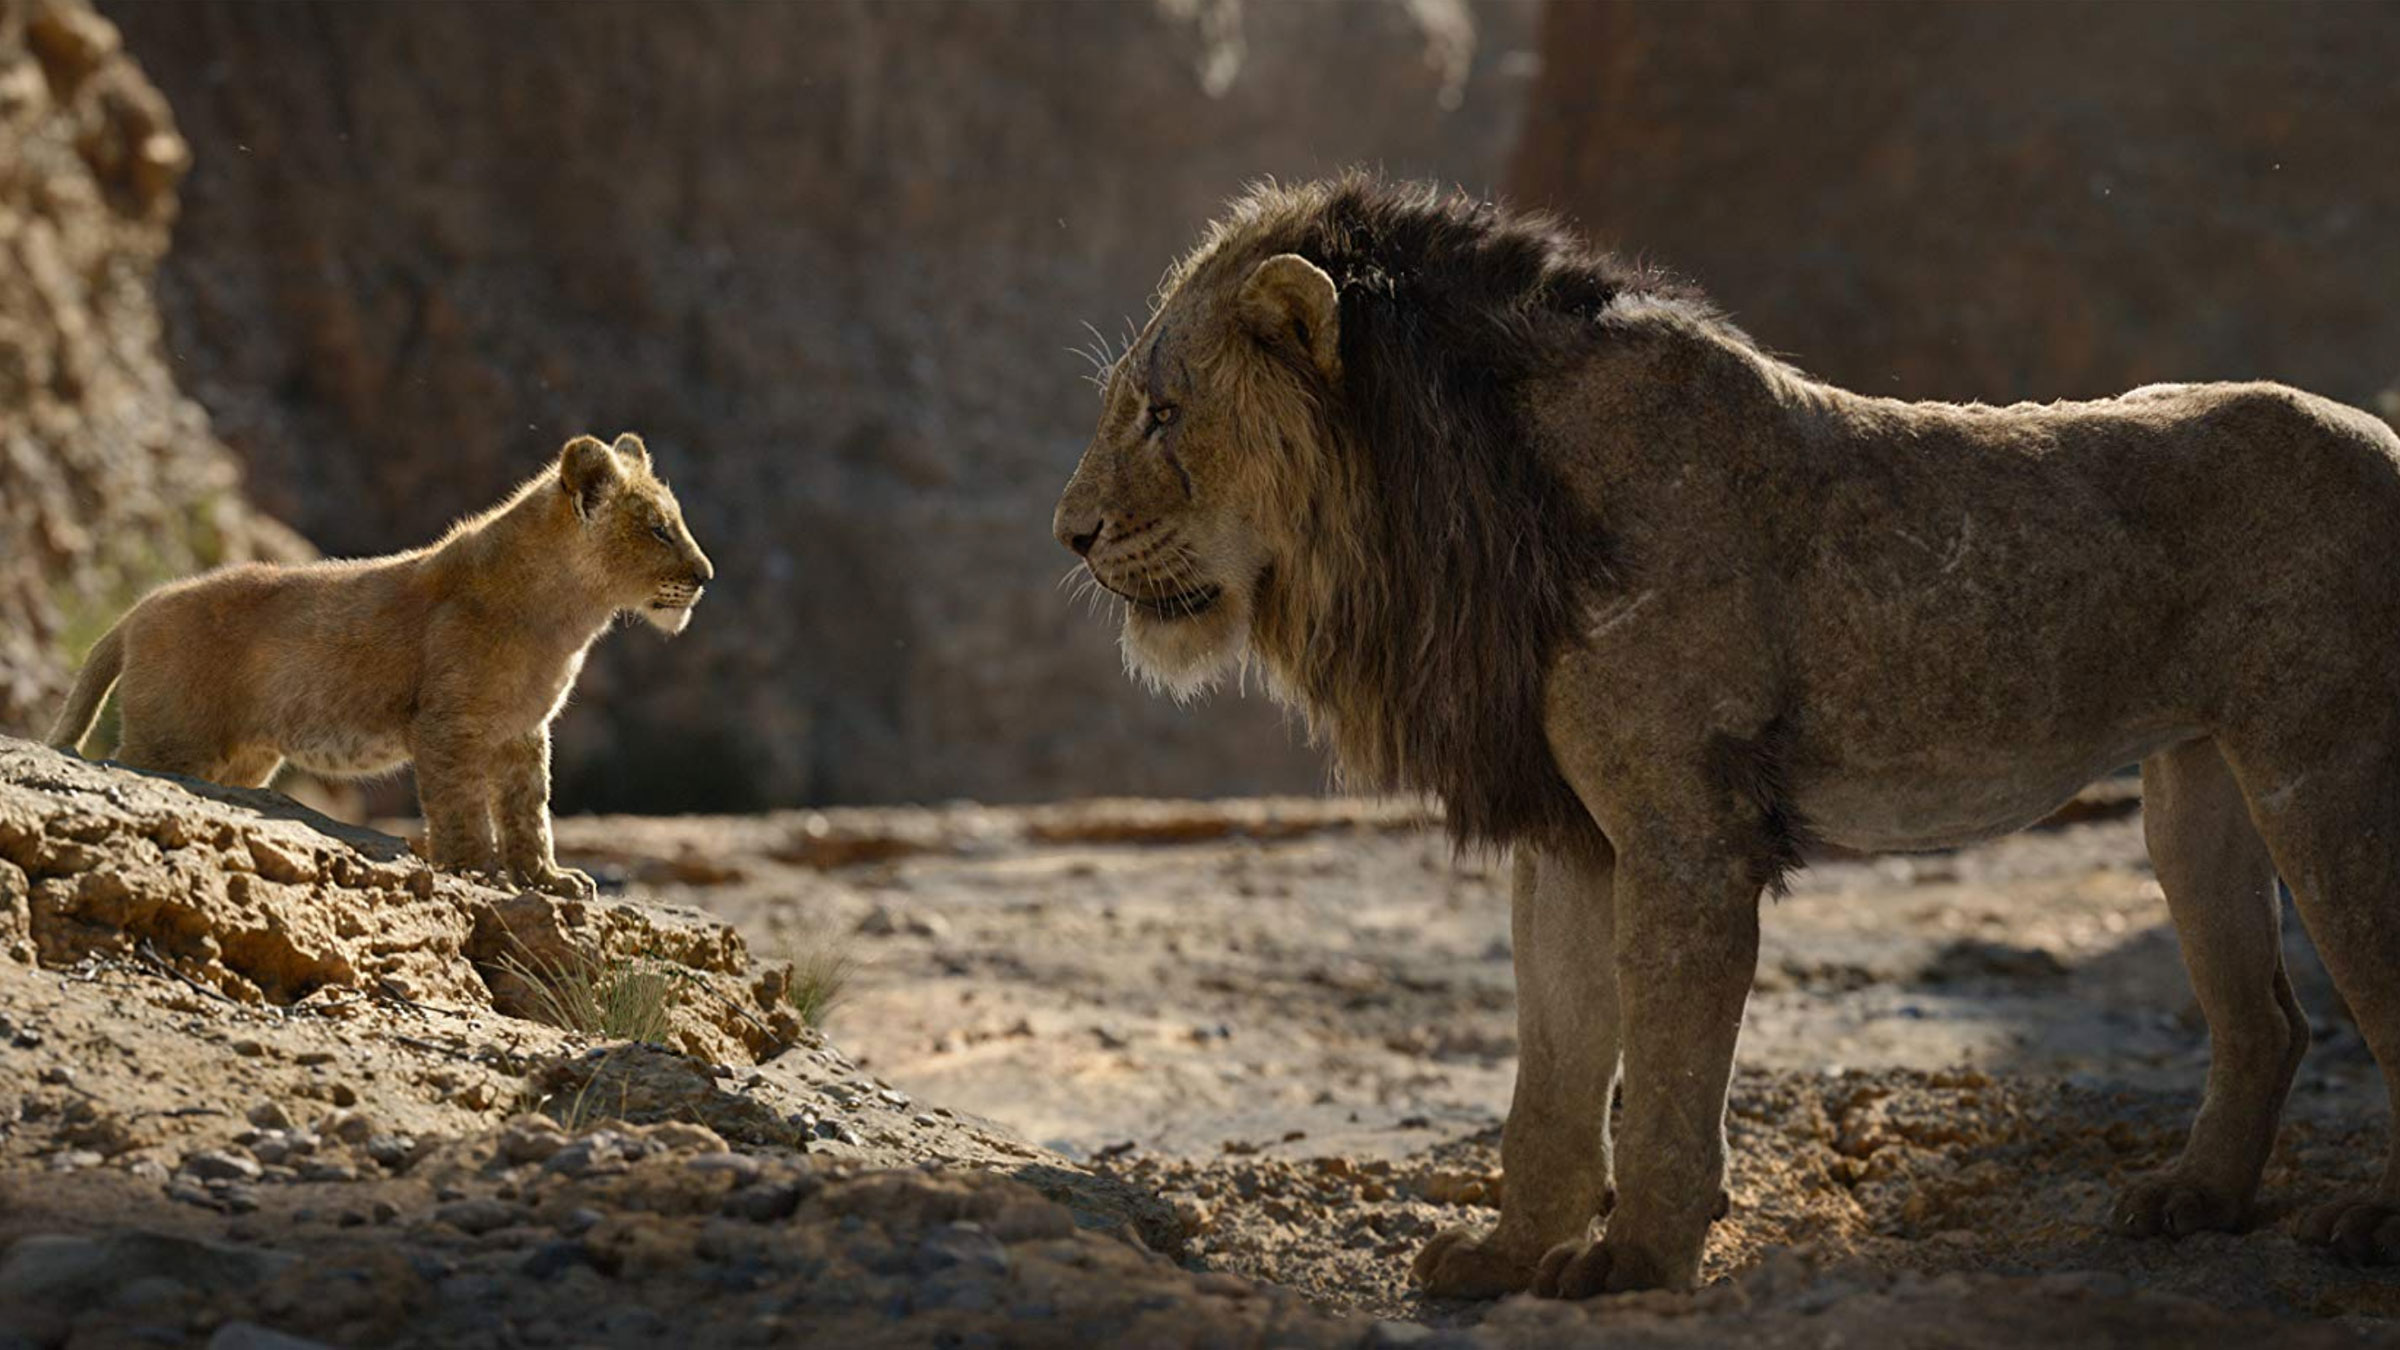 The Lion King (Ultra HD 4K Blu-ray)